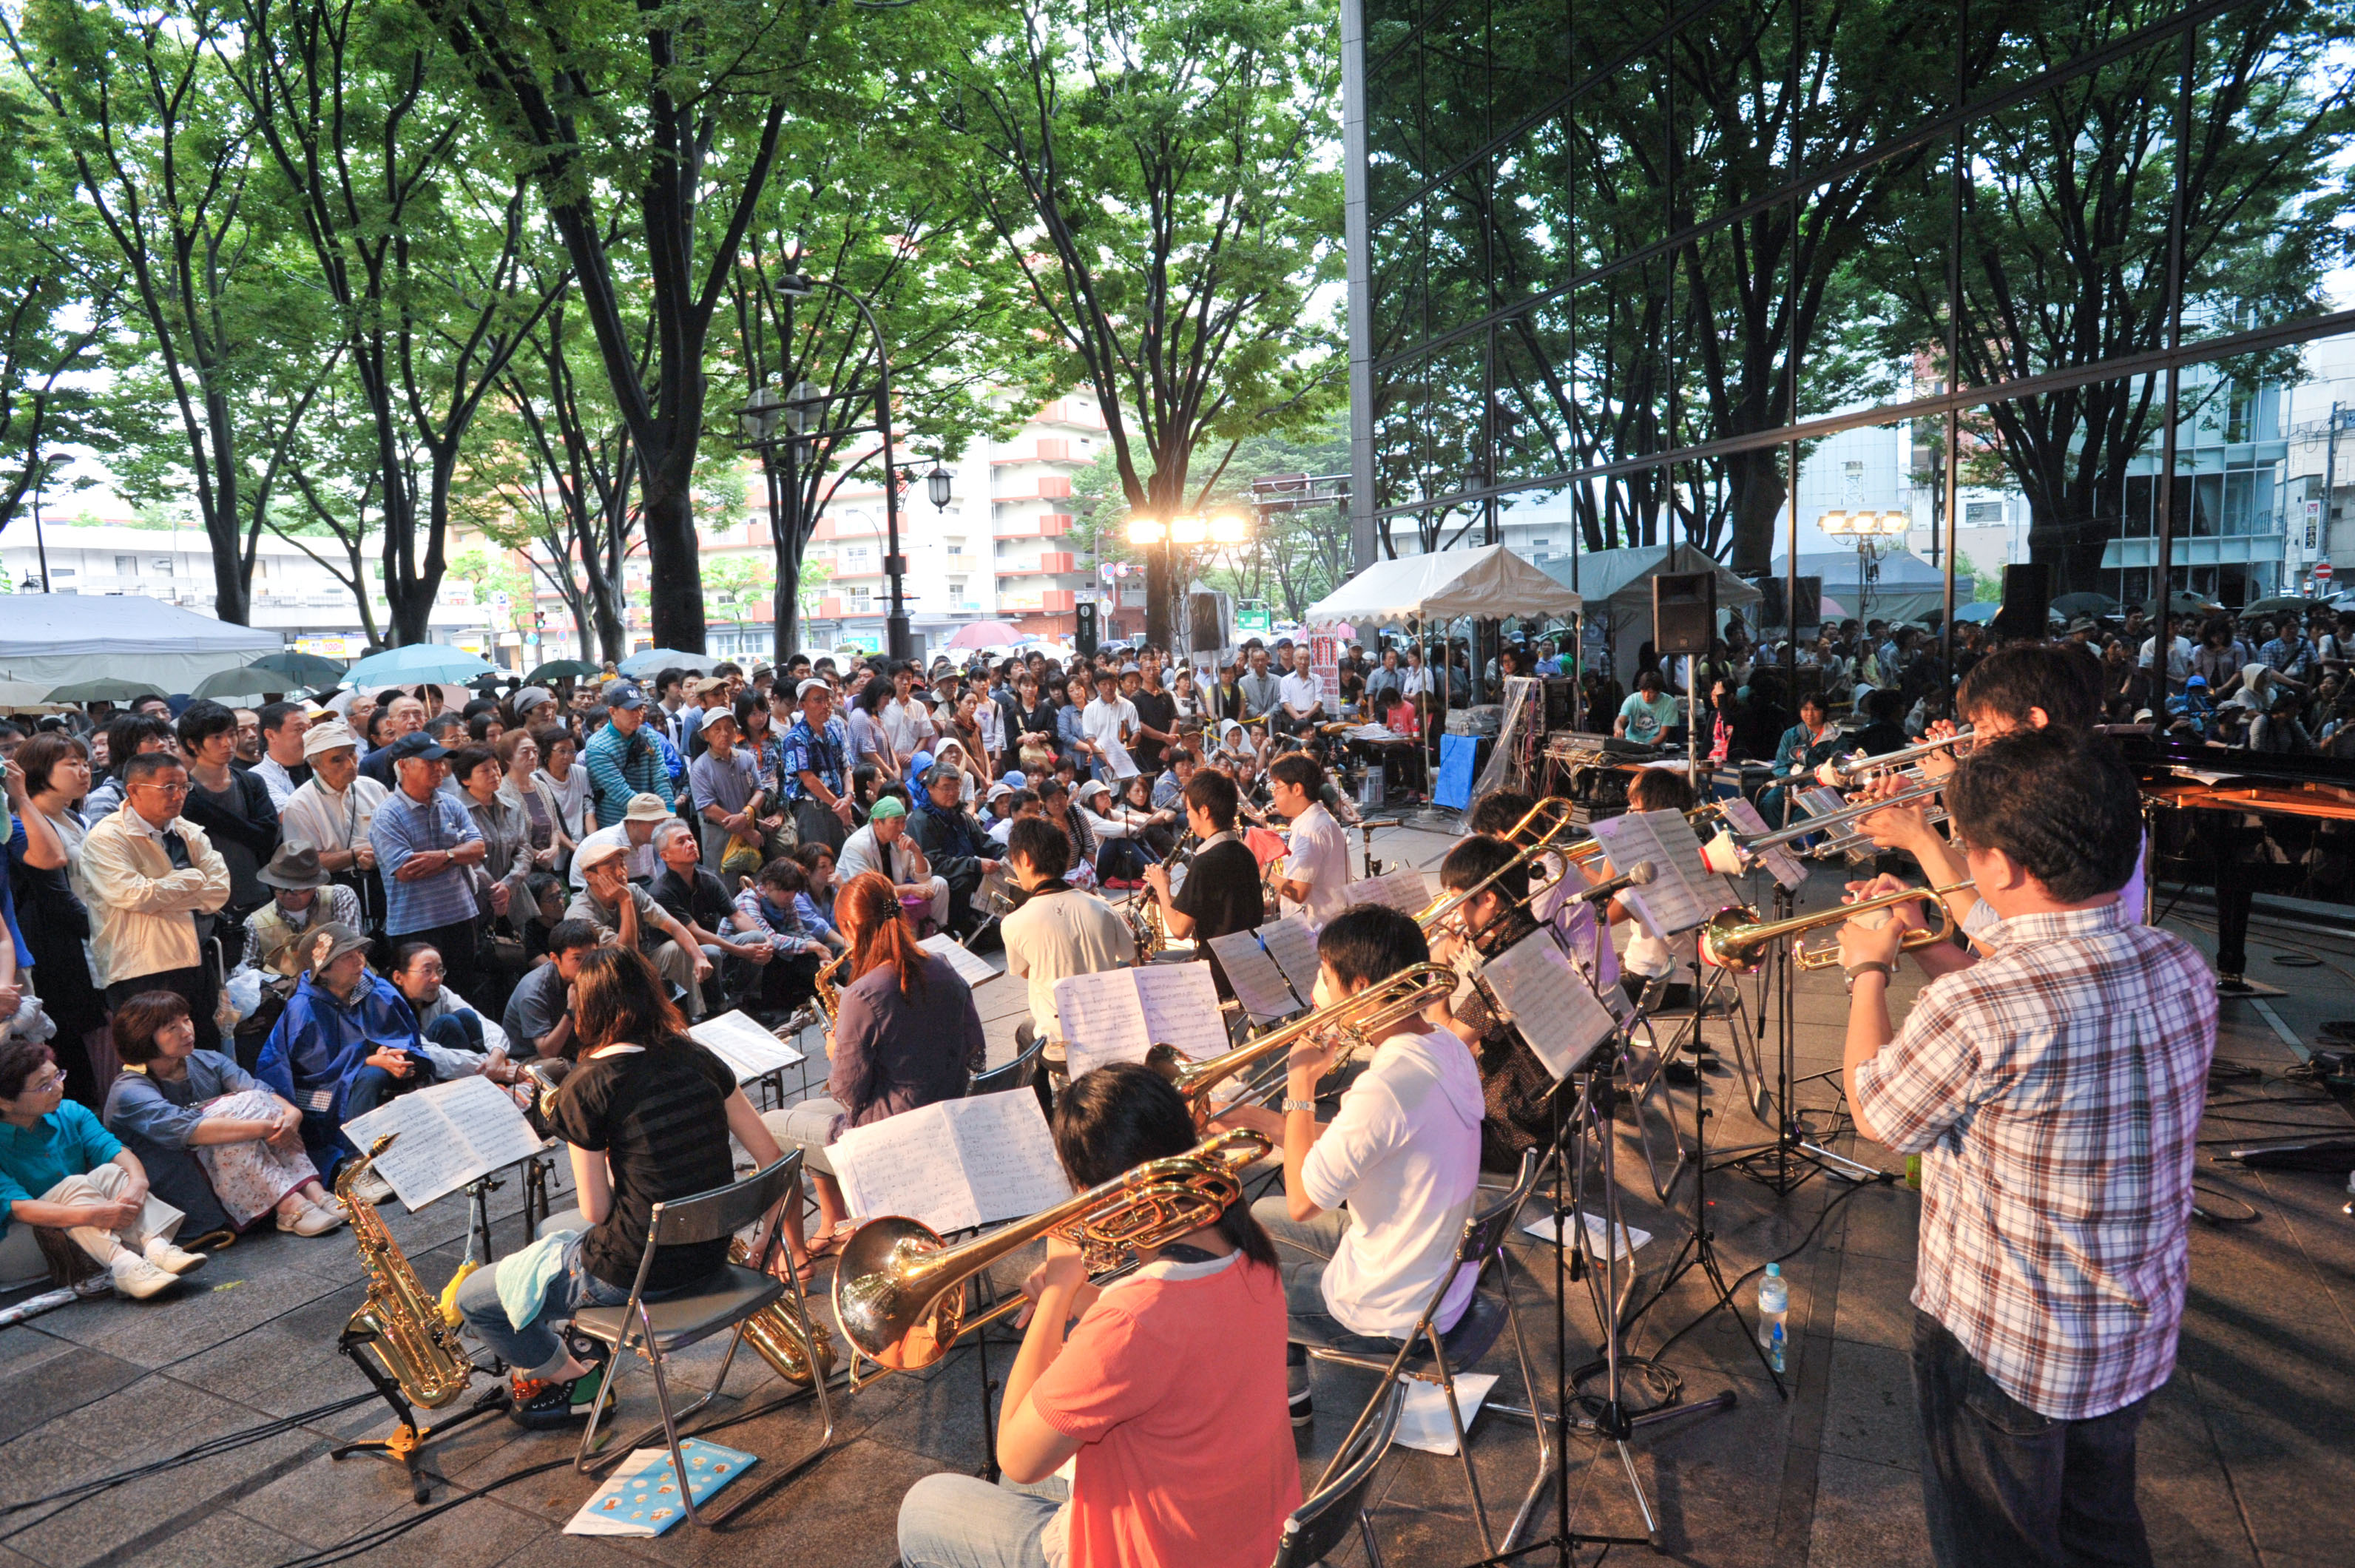 Sounds that soothe: The streets of Sendai become makeshift stages during the Jozenji Streetjazz Festival. | (C) JOZENJI STREETJAZZ FESTIVAL PLANNING COMMITTEE